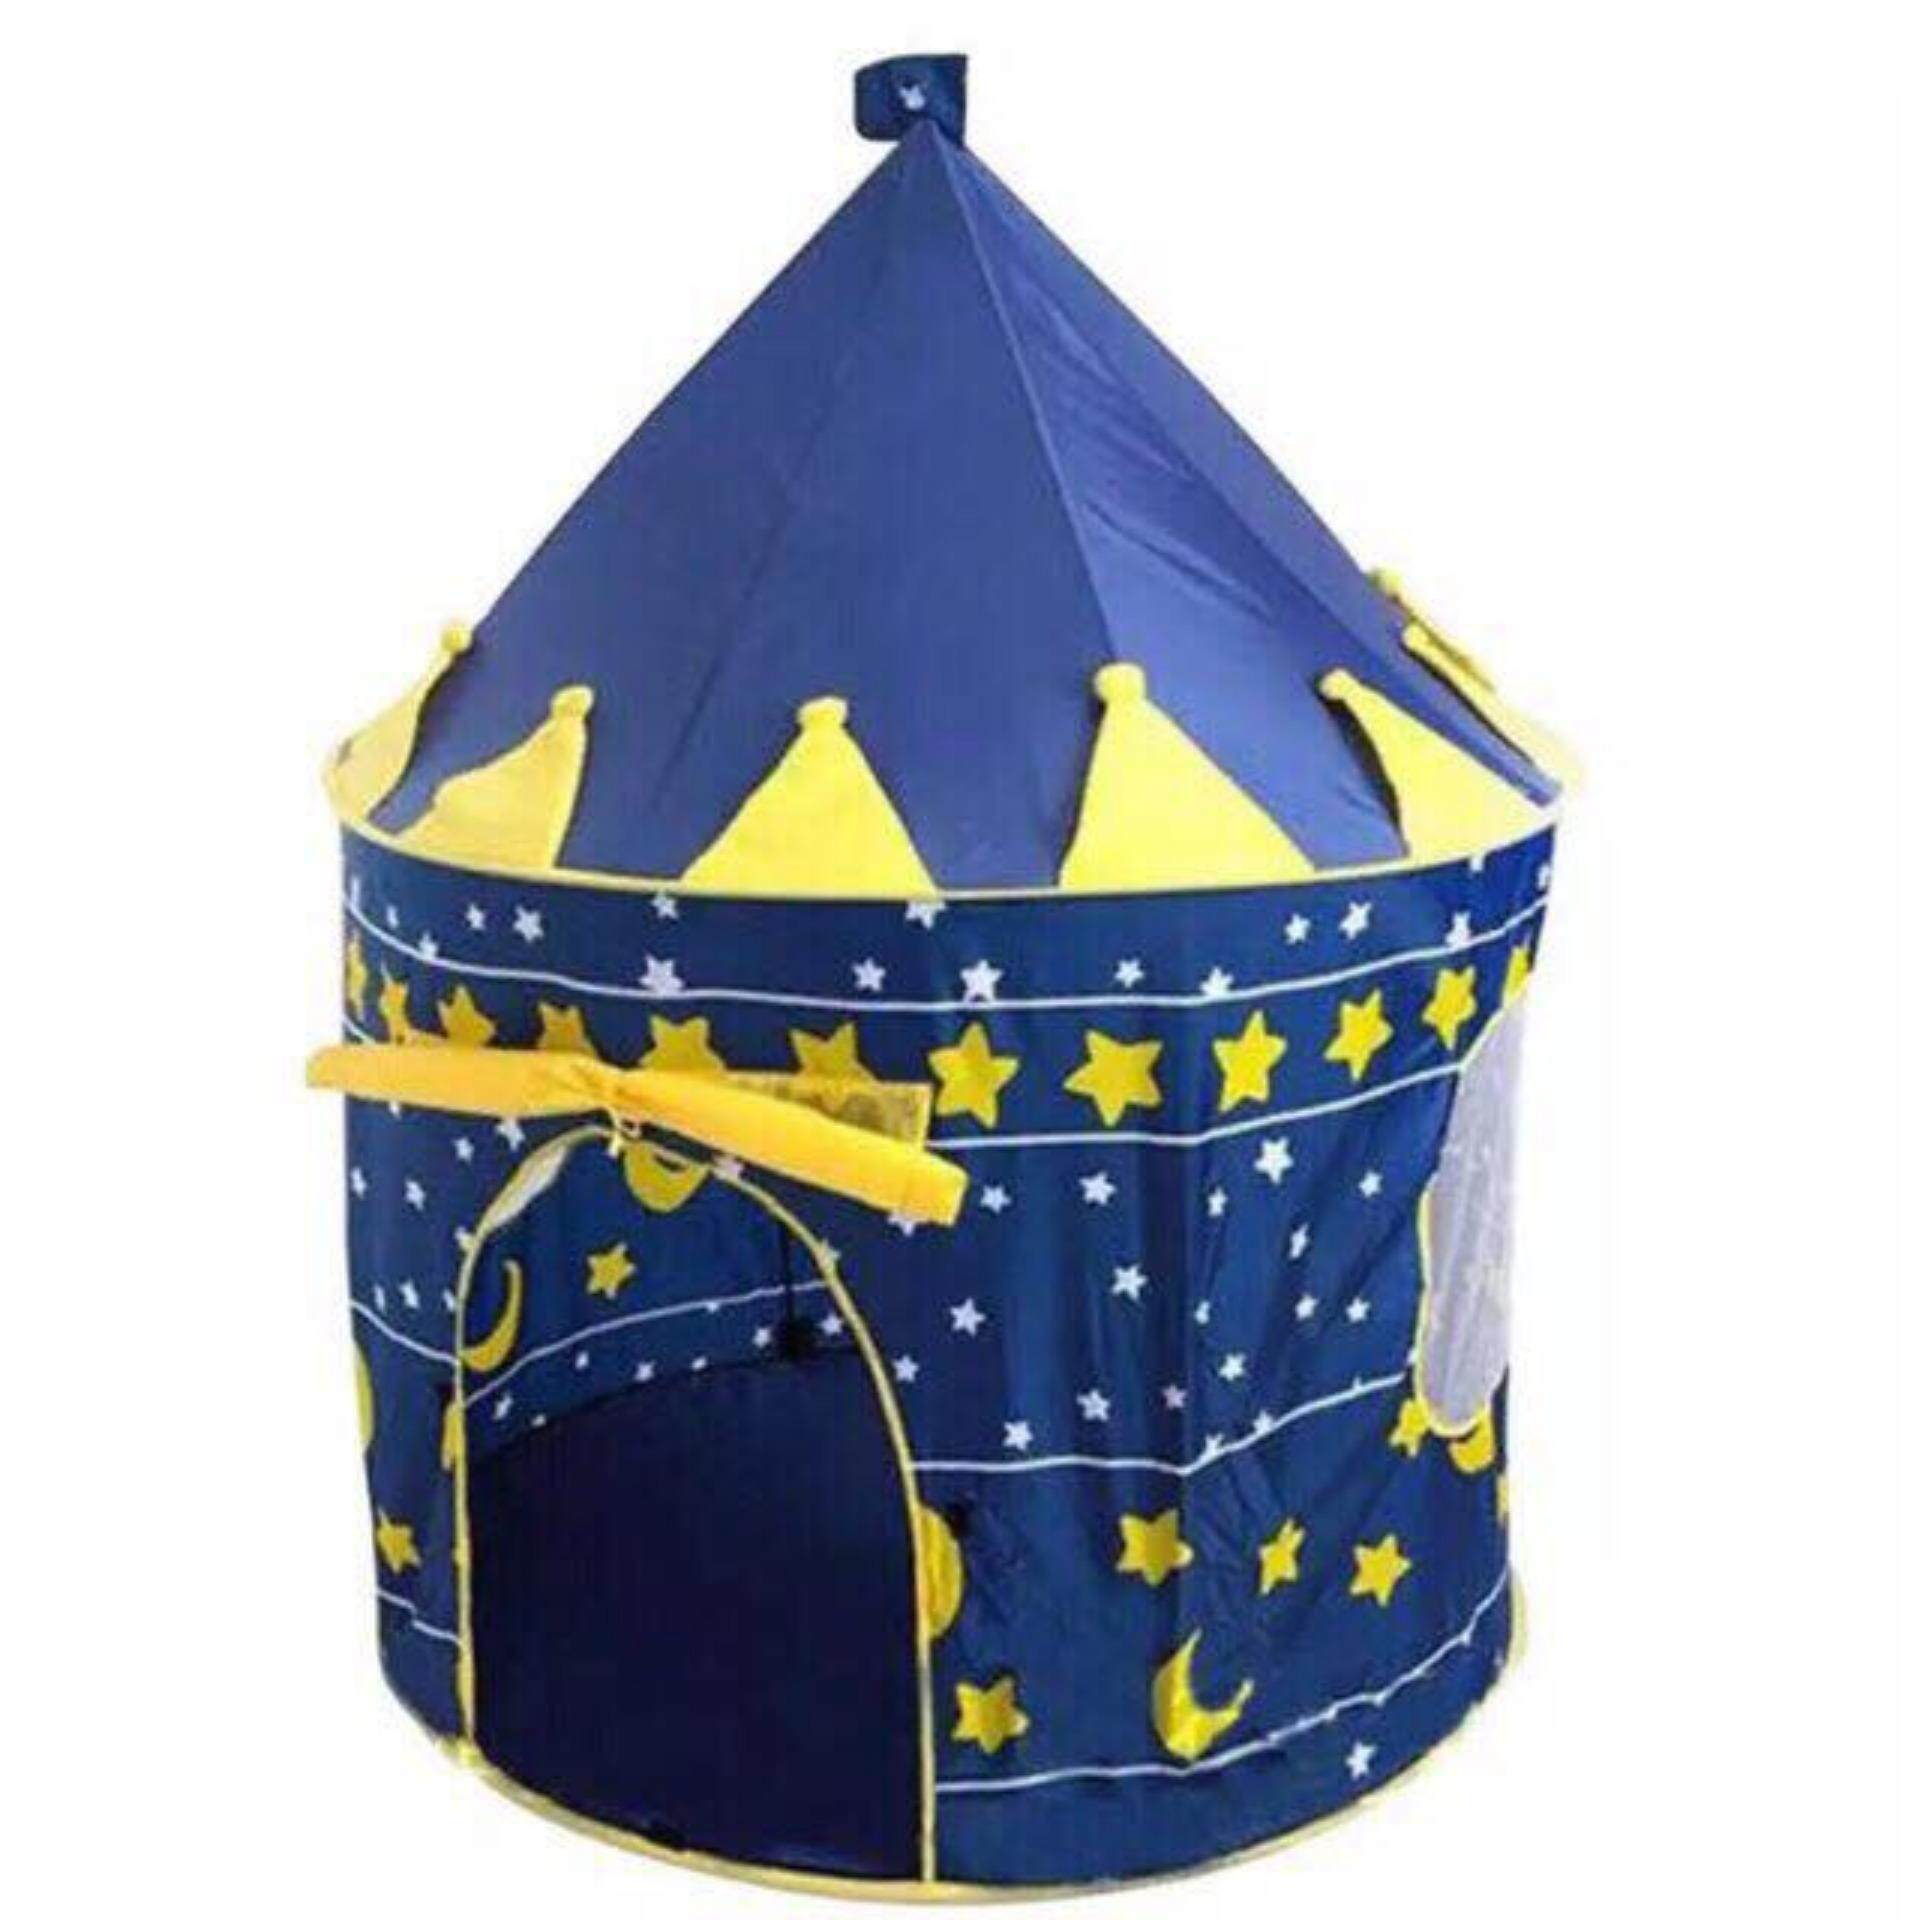 [ready Stock] Kids Play Portable Folding Large Castle Tent By Sse Concept.